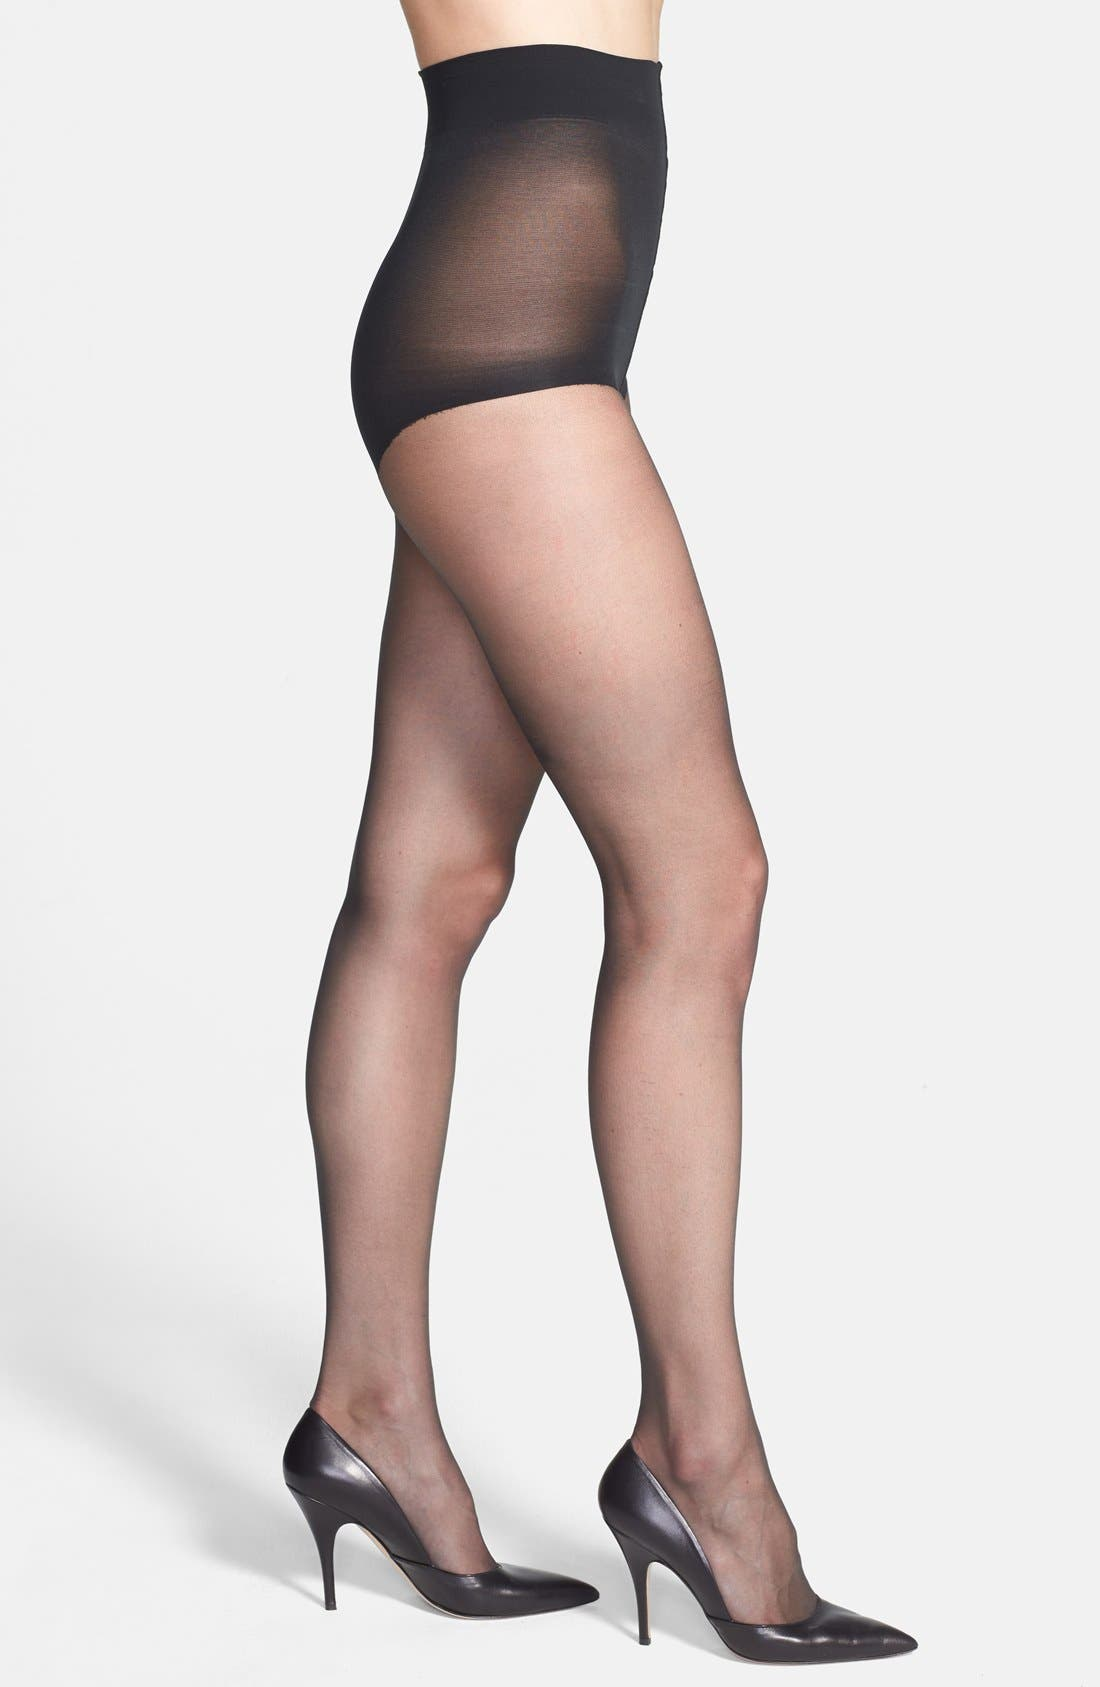 Donna Karan The Nudes Control Top Pantyhose